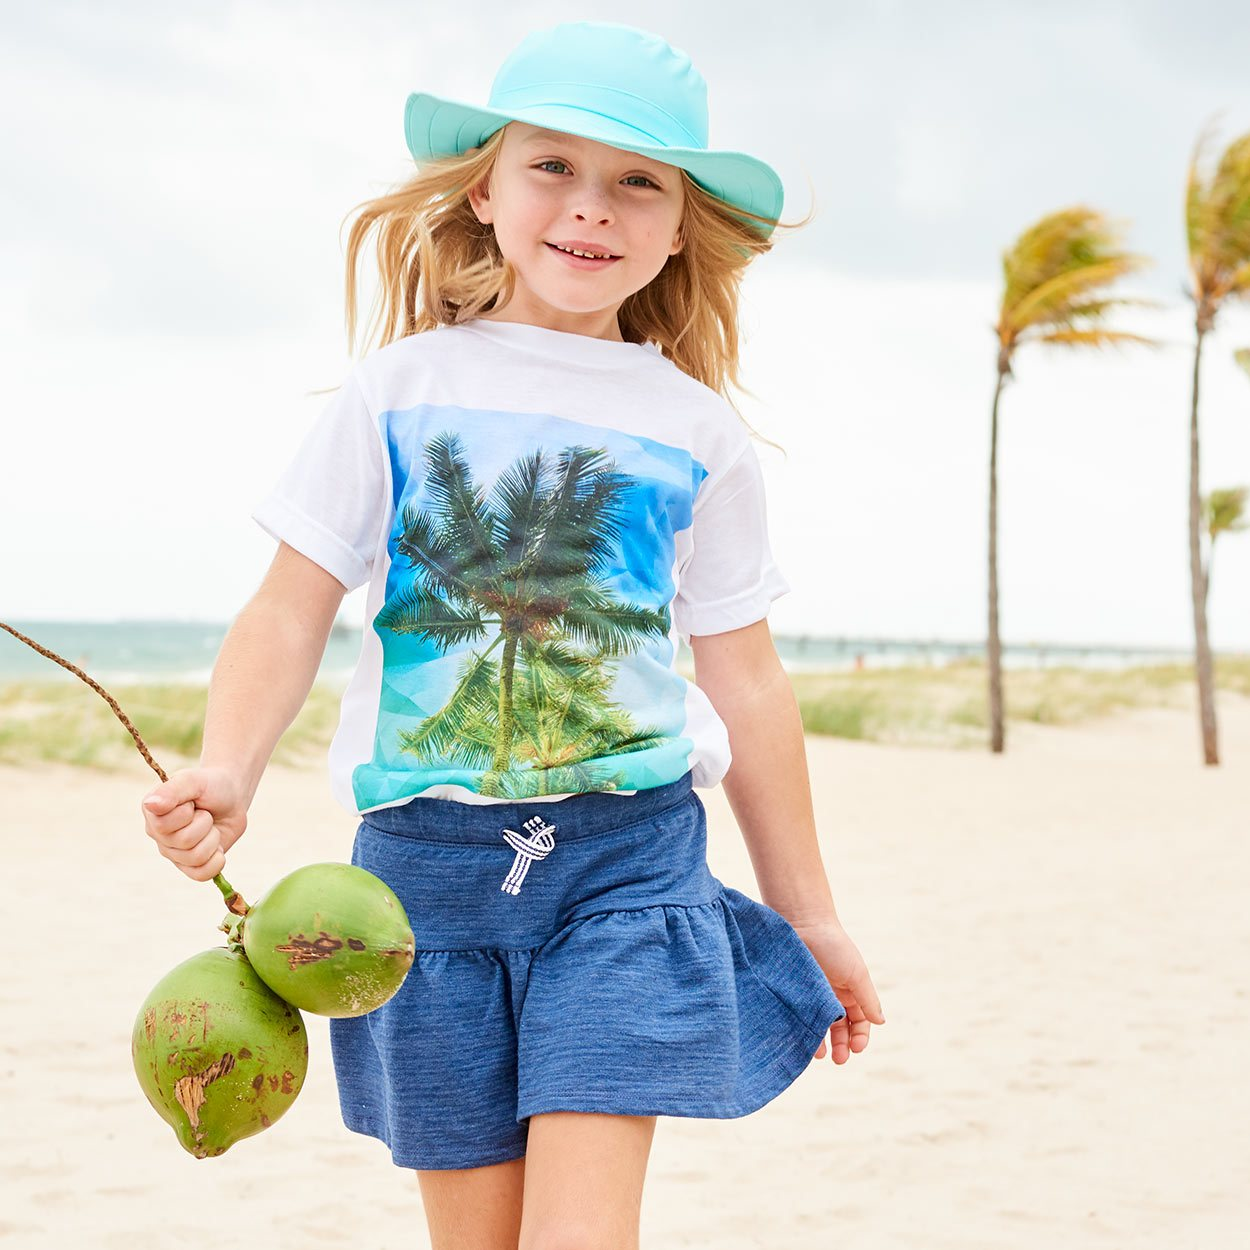 Kids Palms Graphic Tshirt White Green Blue Size Xs L Unisex Geo Tropical Girl Skipping On The Sand Holding Coconuts Sunpoplife